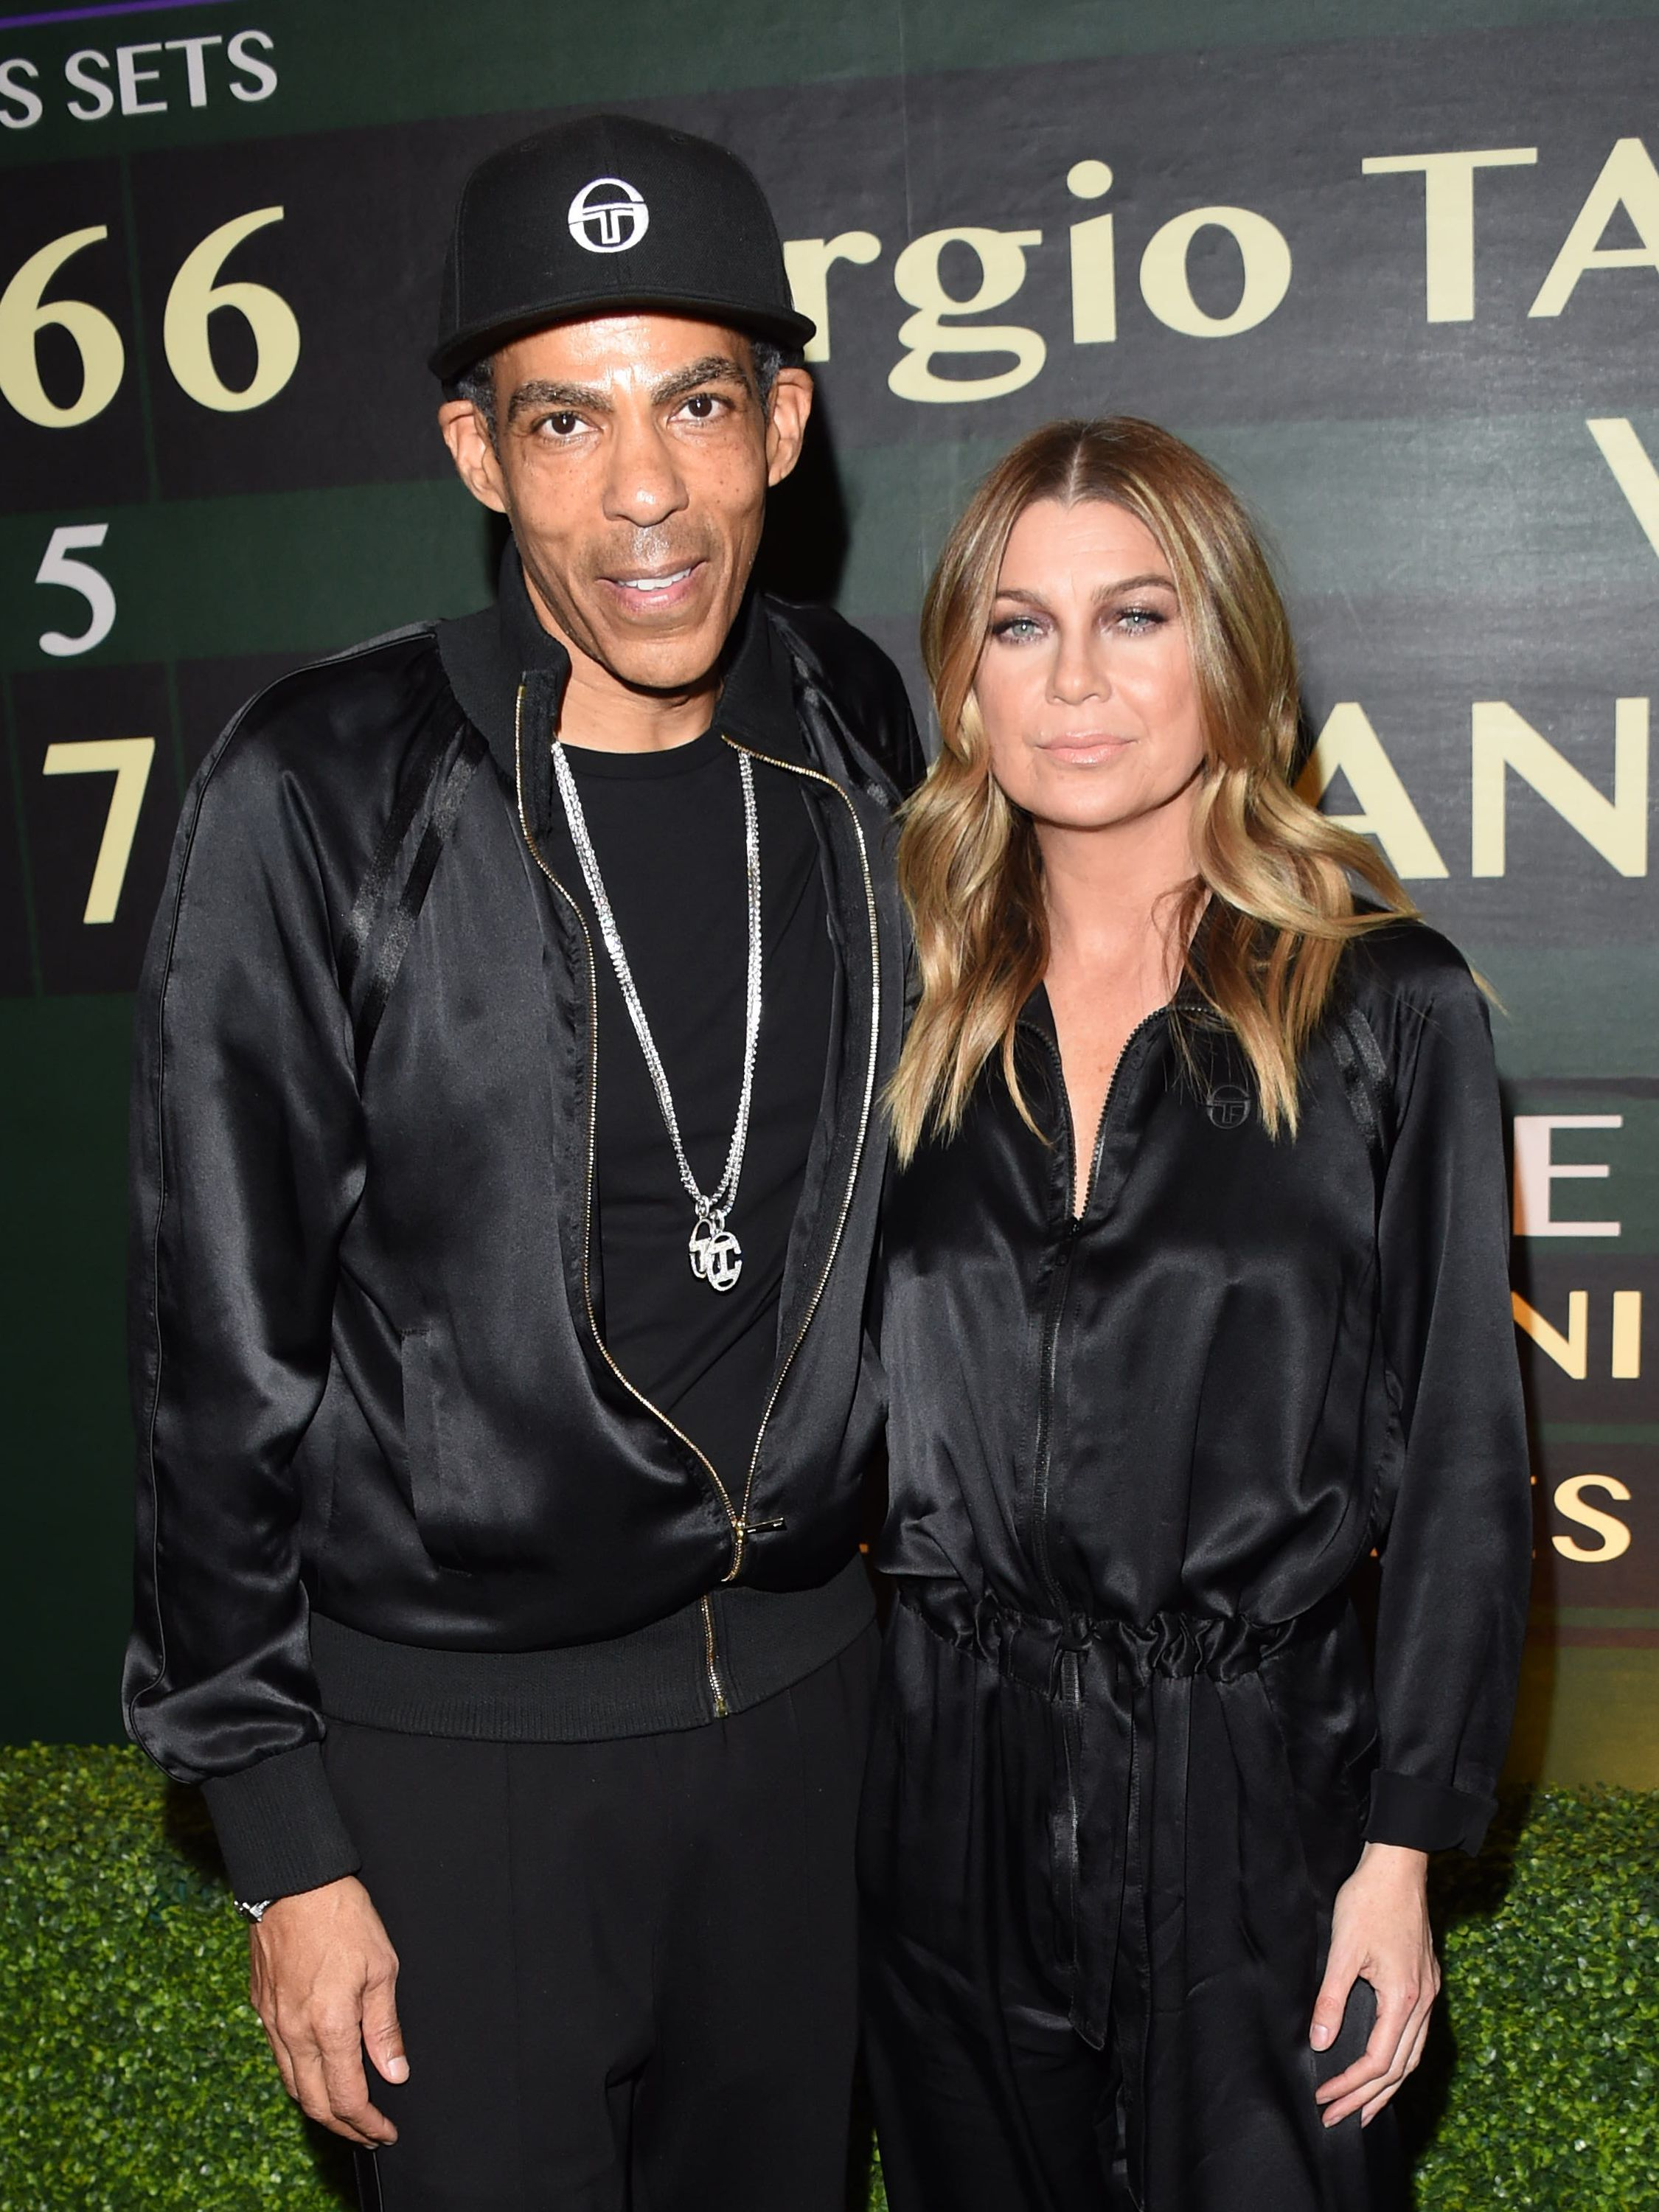 Chris Ivery and Ellen Pompeo attend the Sergio Tacchini's STLA Launch in Los Angeles on Feb. 21, 2019.